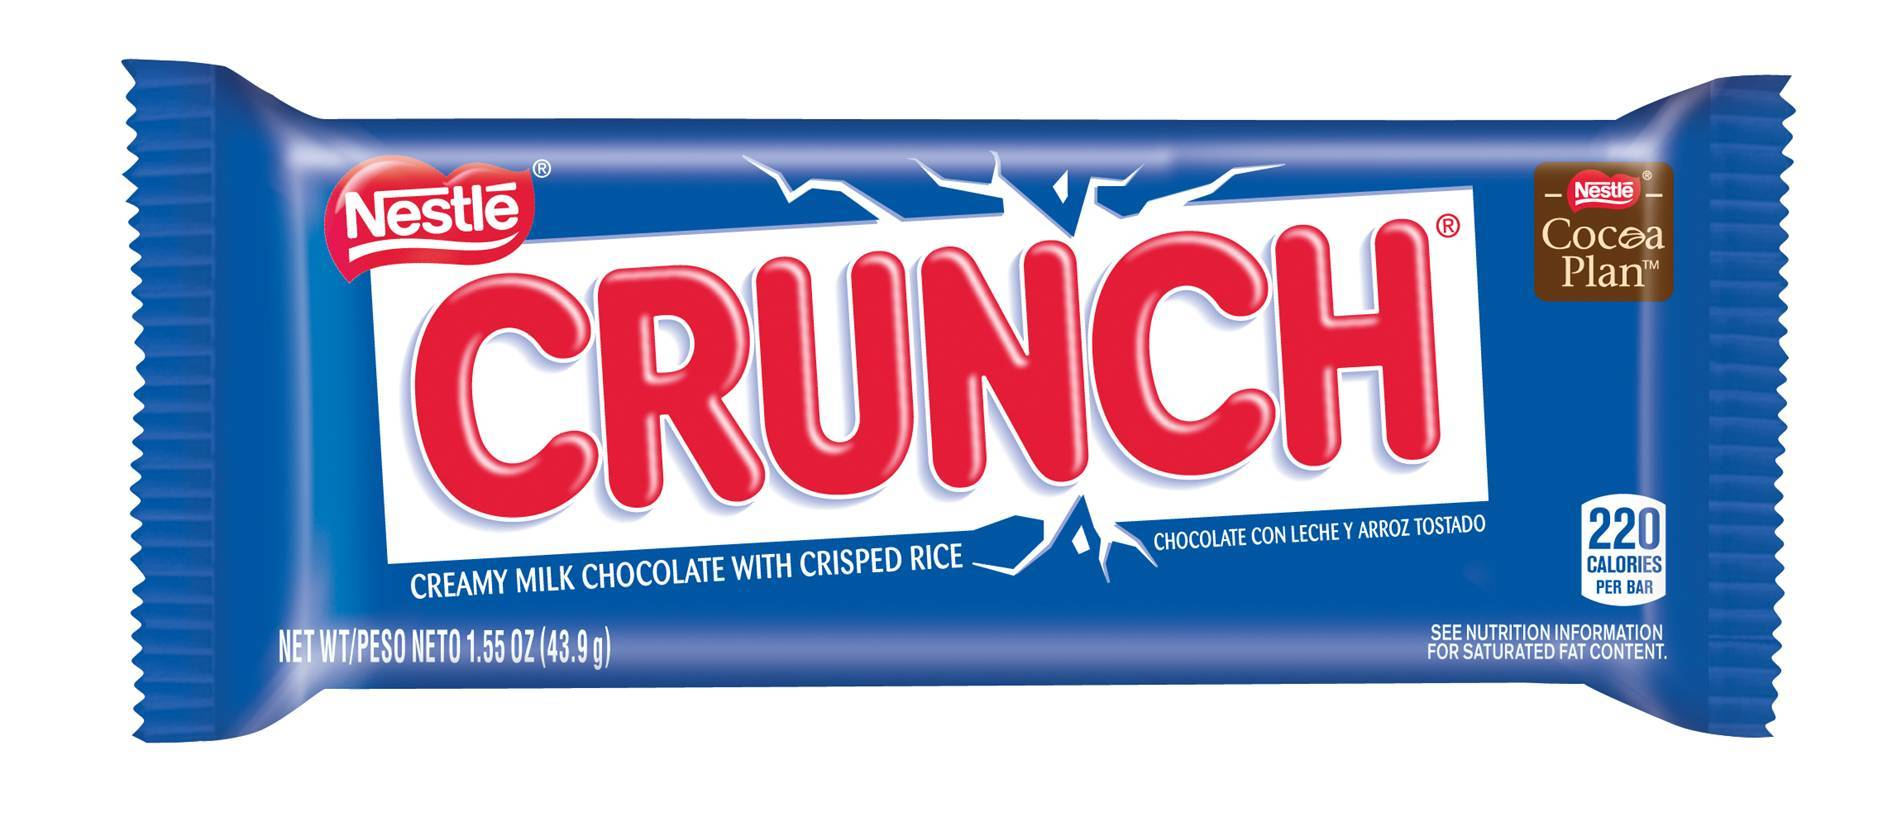 Ben noto Nestlé USA Sources 100% Certified Cocoa Beans for NESTLÉ® CRUNCH  KA27